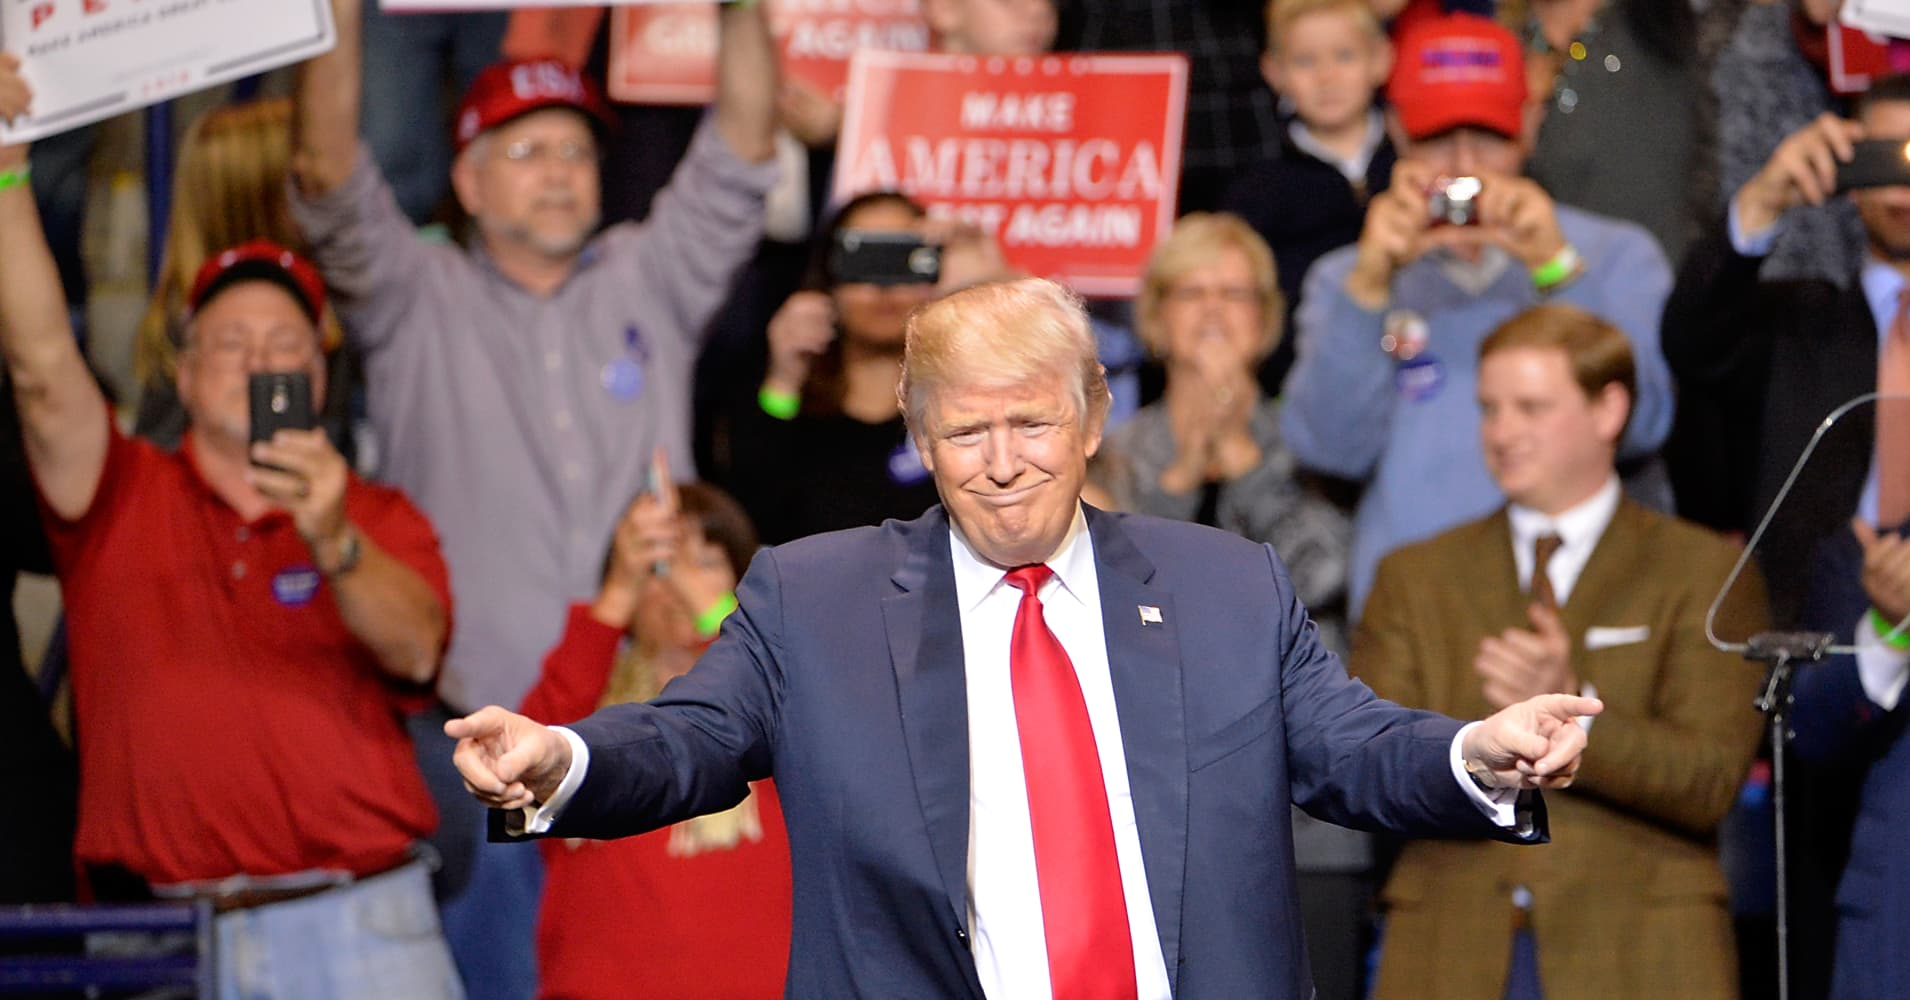 Donald Trump points to his supporters during his 'Thank You' rally at Crown Coliseum on December 6, 2016 in Fayetteville, North Carolina.